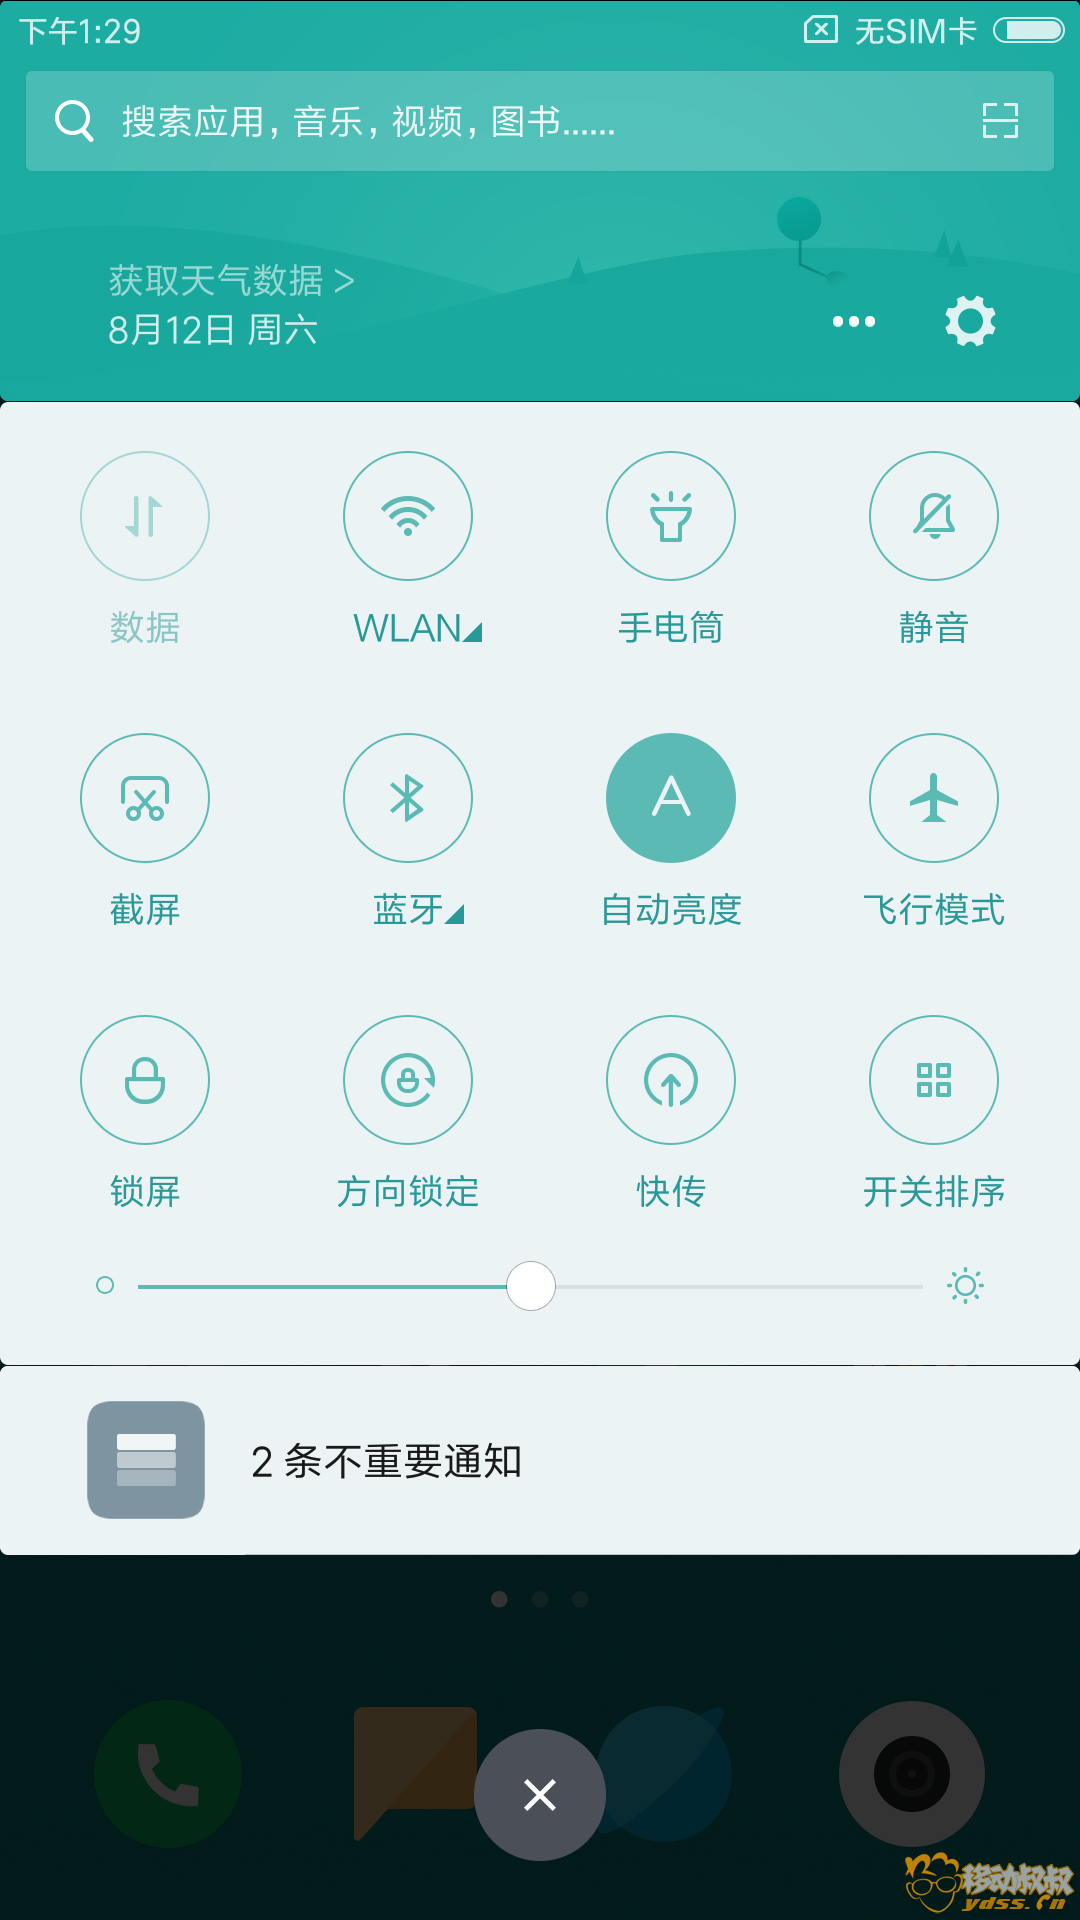 Screenshot_2017-08-12-13-29-14-564_com.miui.home.png